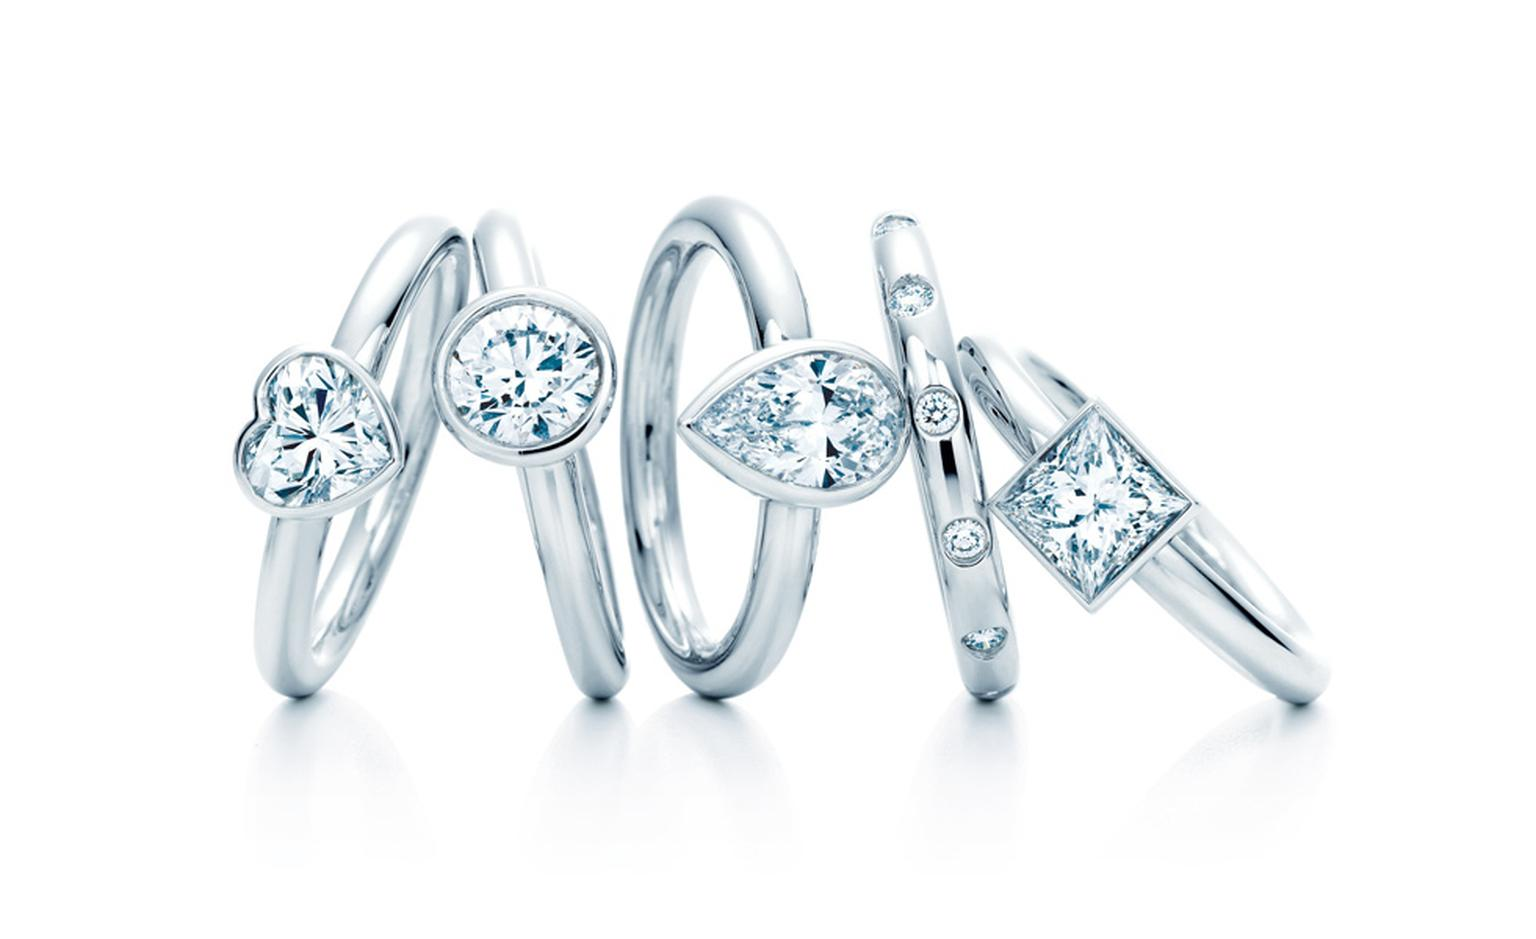 Tiffany Bezet engagement rings